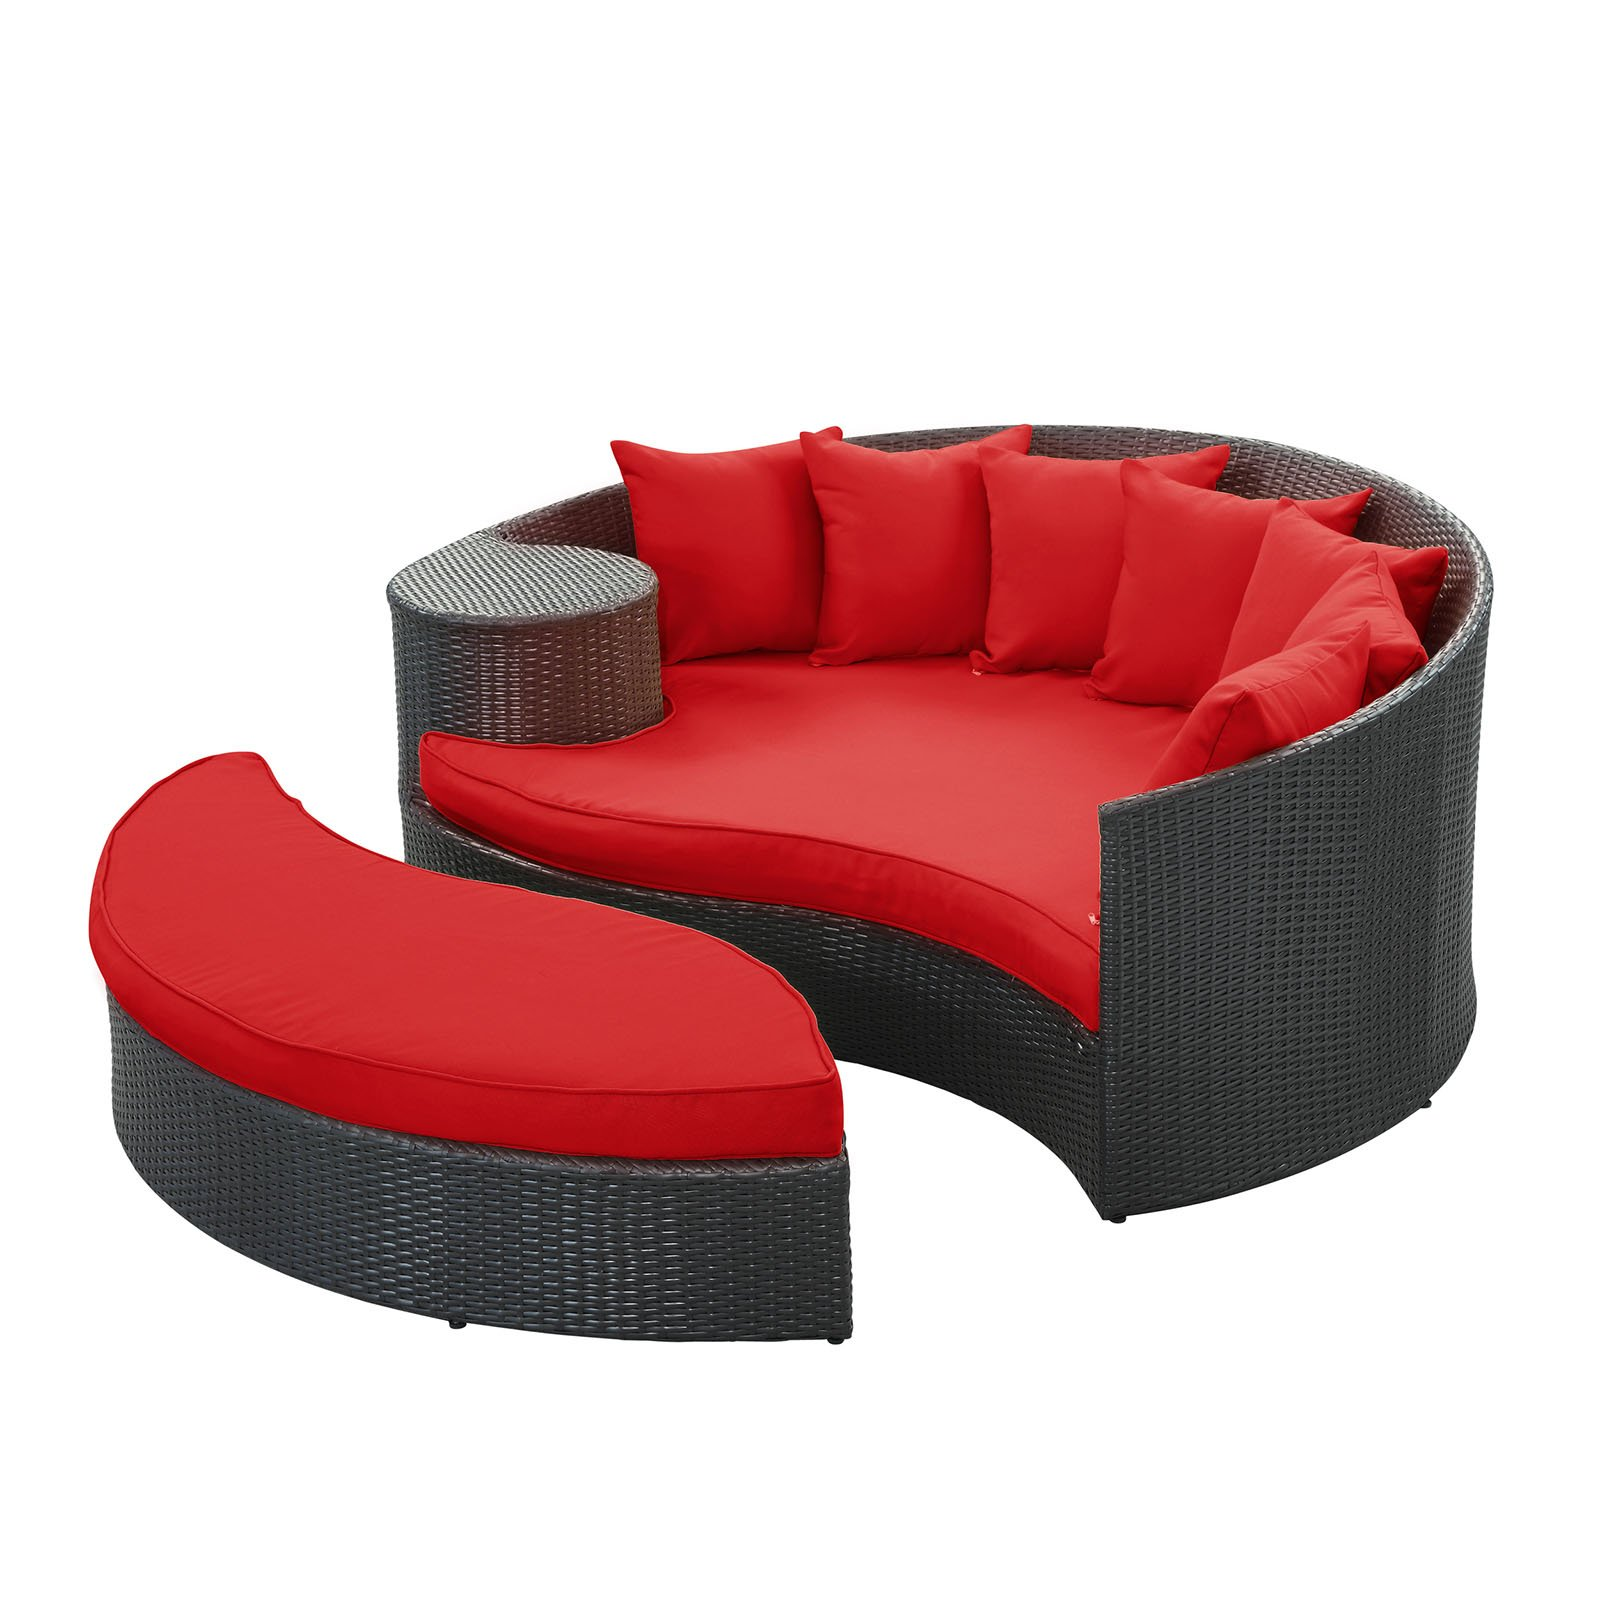 Modway Taiji Outdoor Wicker Patio Daybed with Ottoman in Espresso with Red Cushions